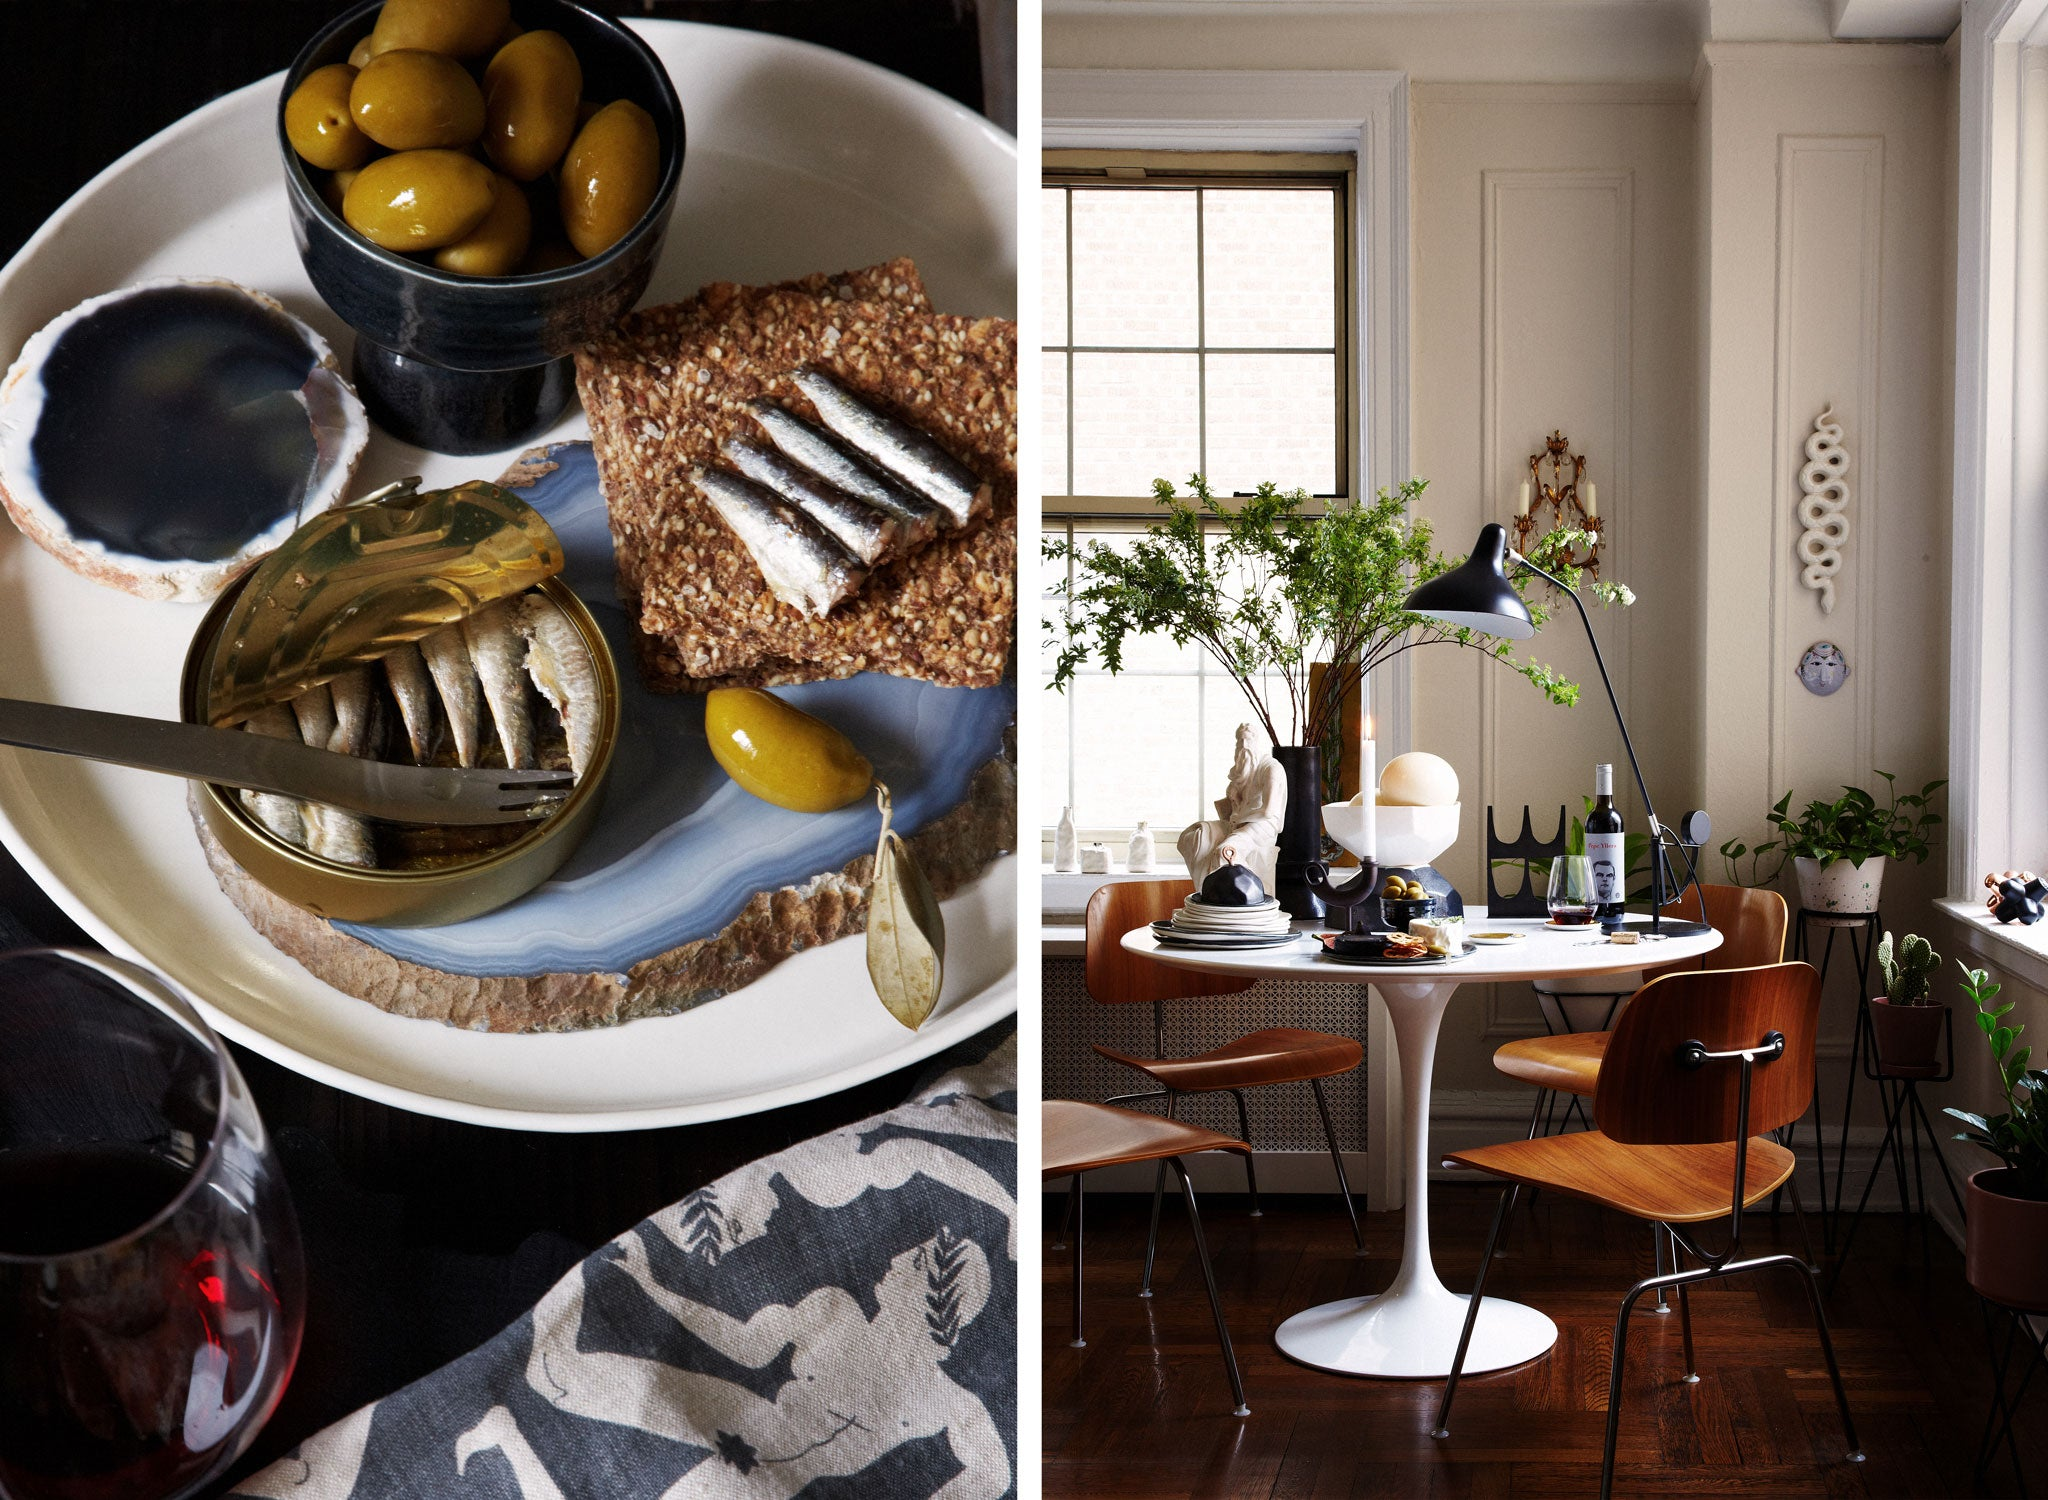 Styled by Marcus Hay, sardines and olives served on DBO HOME ceramics and a dining room with DBO HOME ceramics